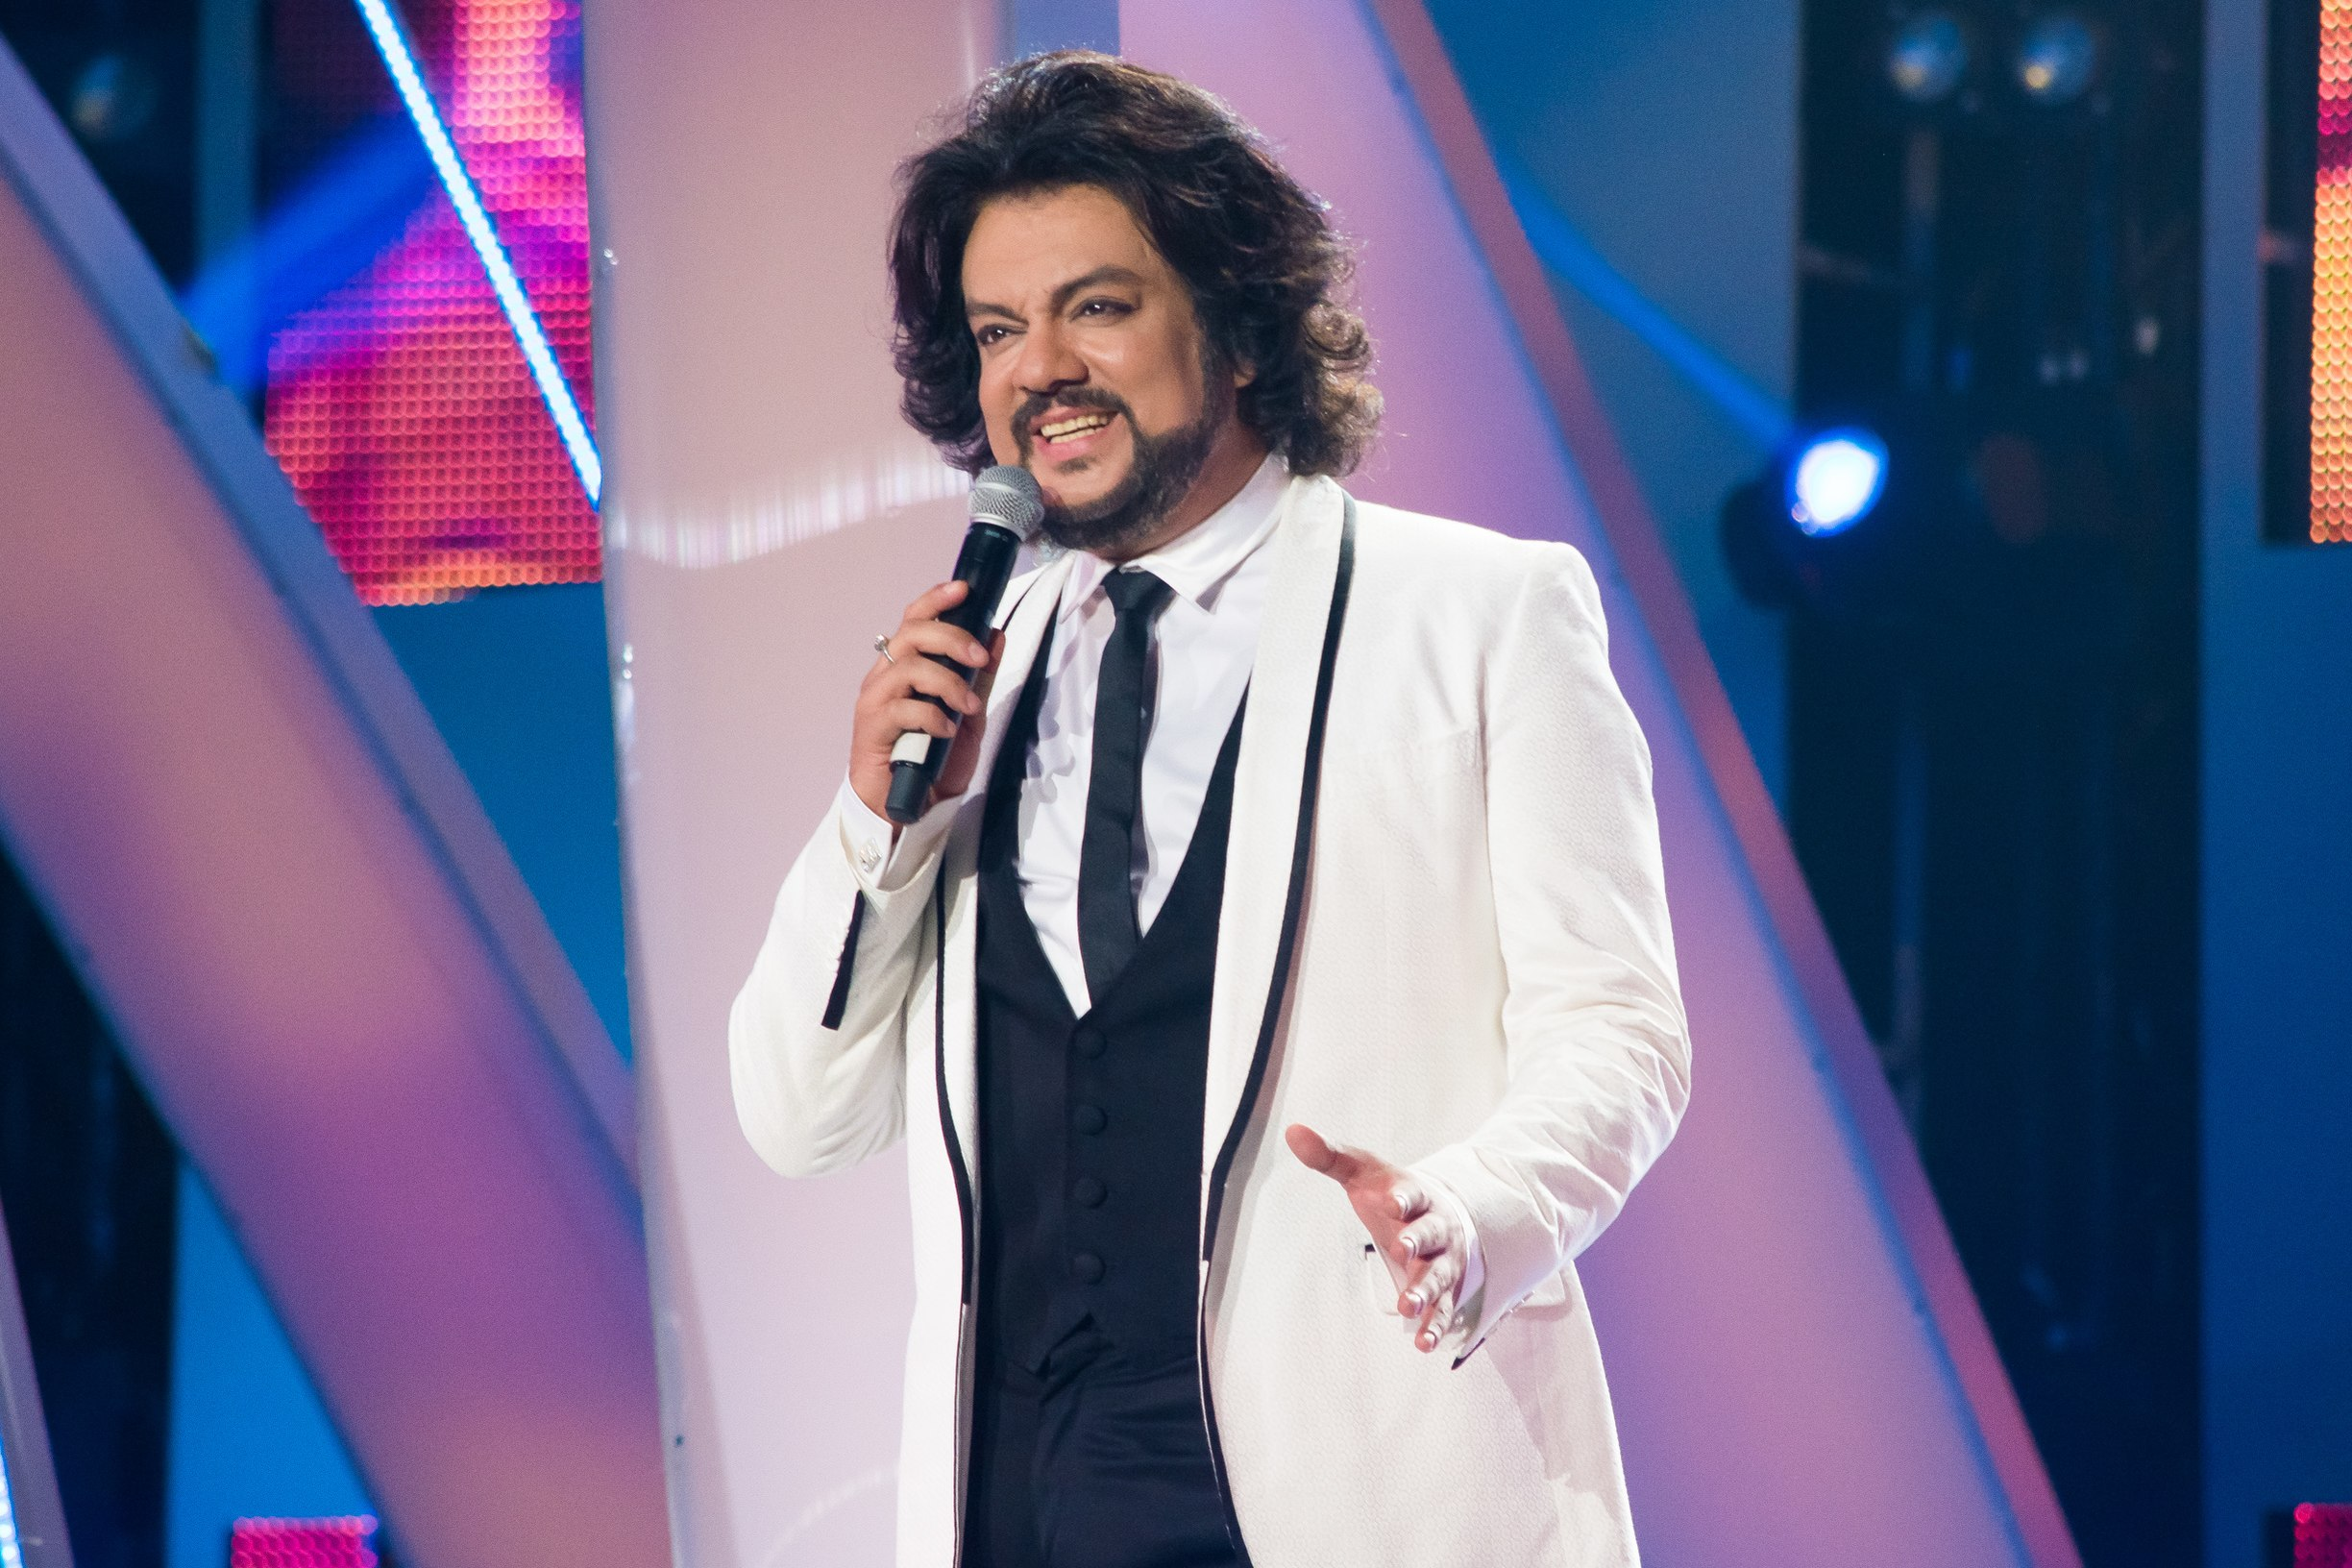 Philip Kirkorov is on a tight diet 12/10/2009 80